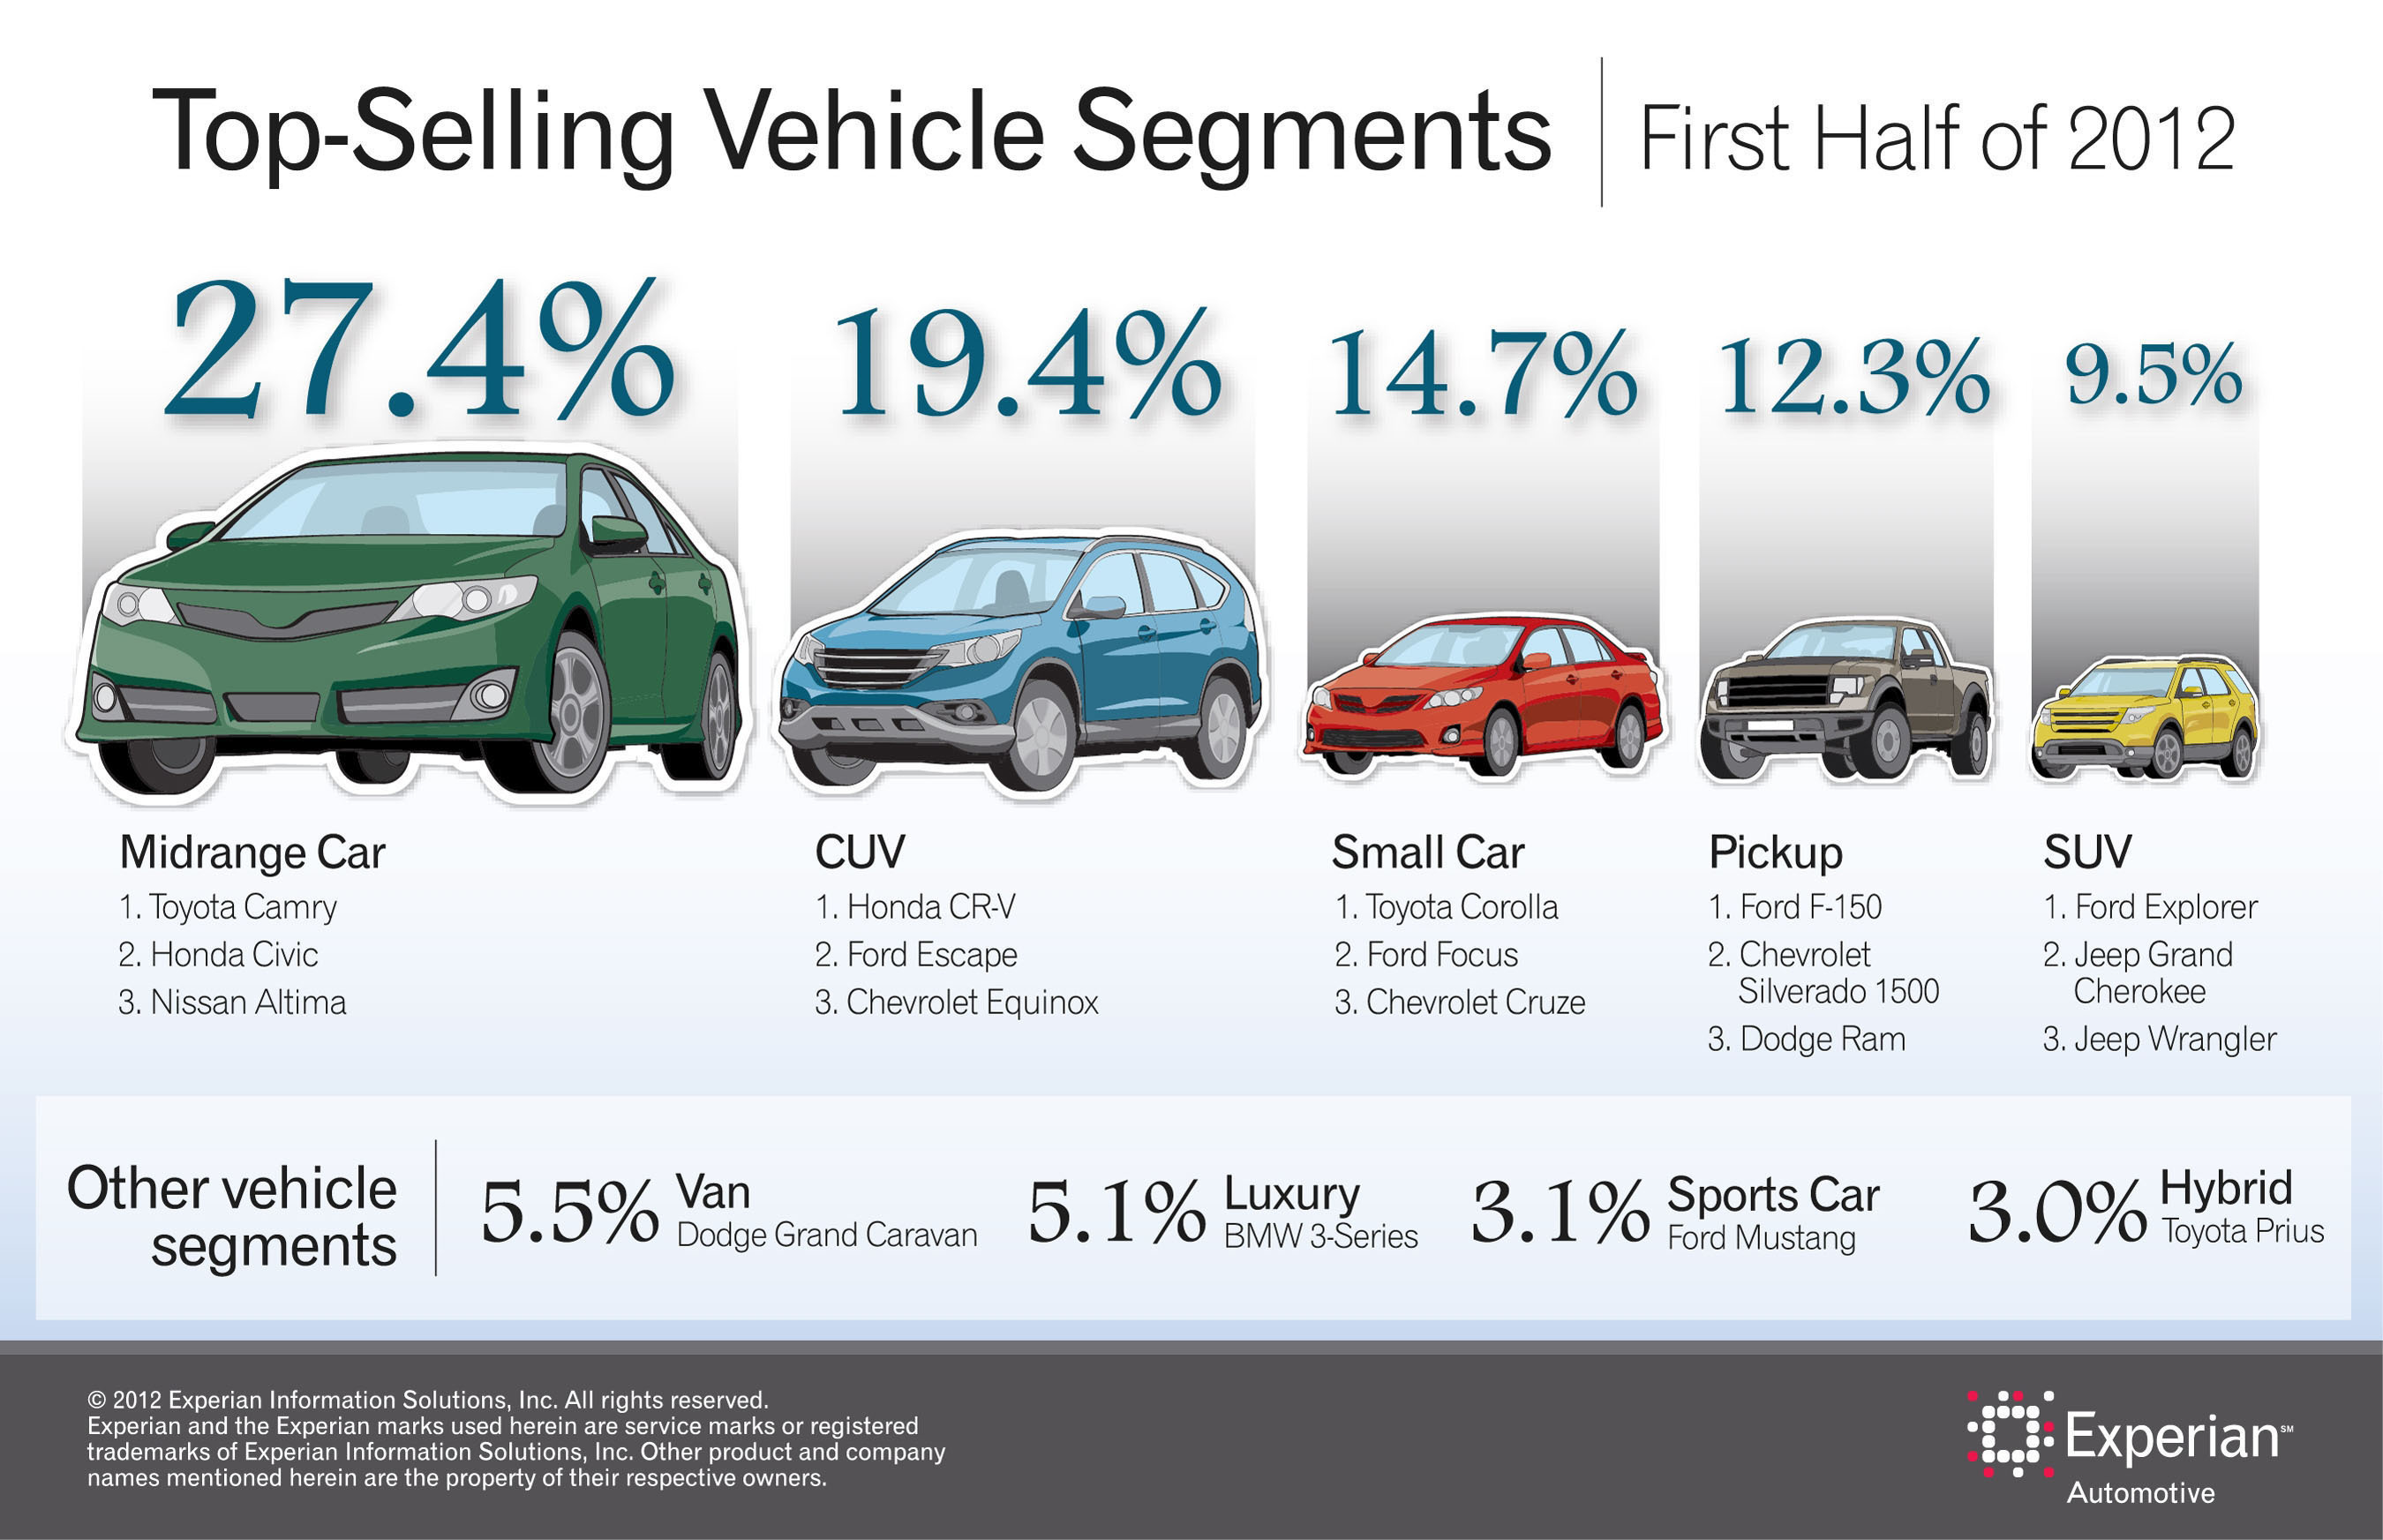 Midrange cars are top-selling segment; Toyota Camry top vehicle.  (PRNewsFoto/Experian Automotive)